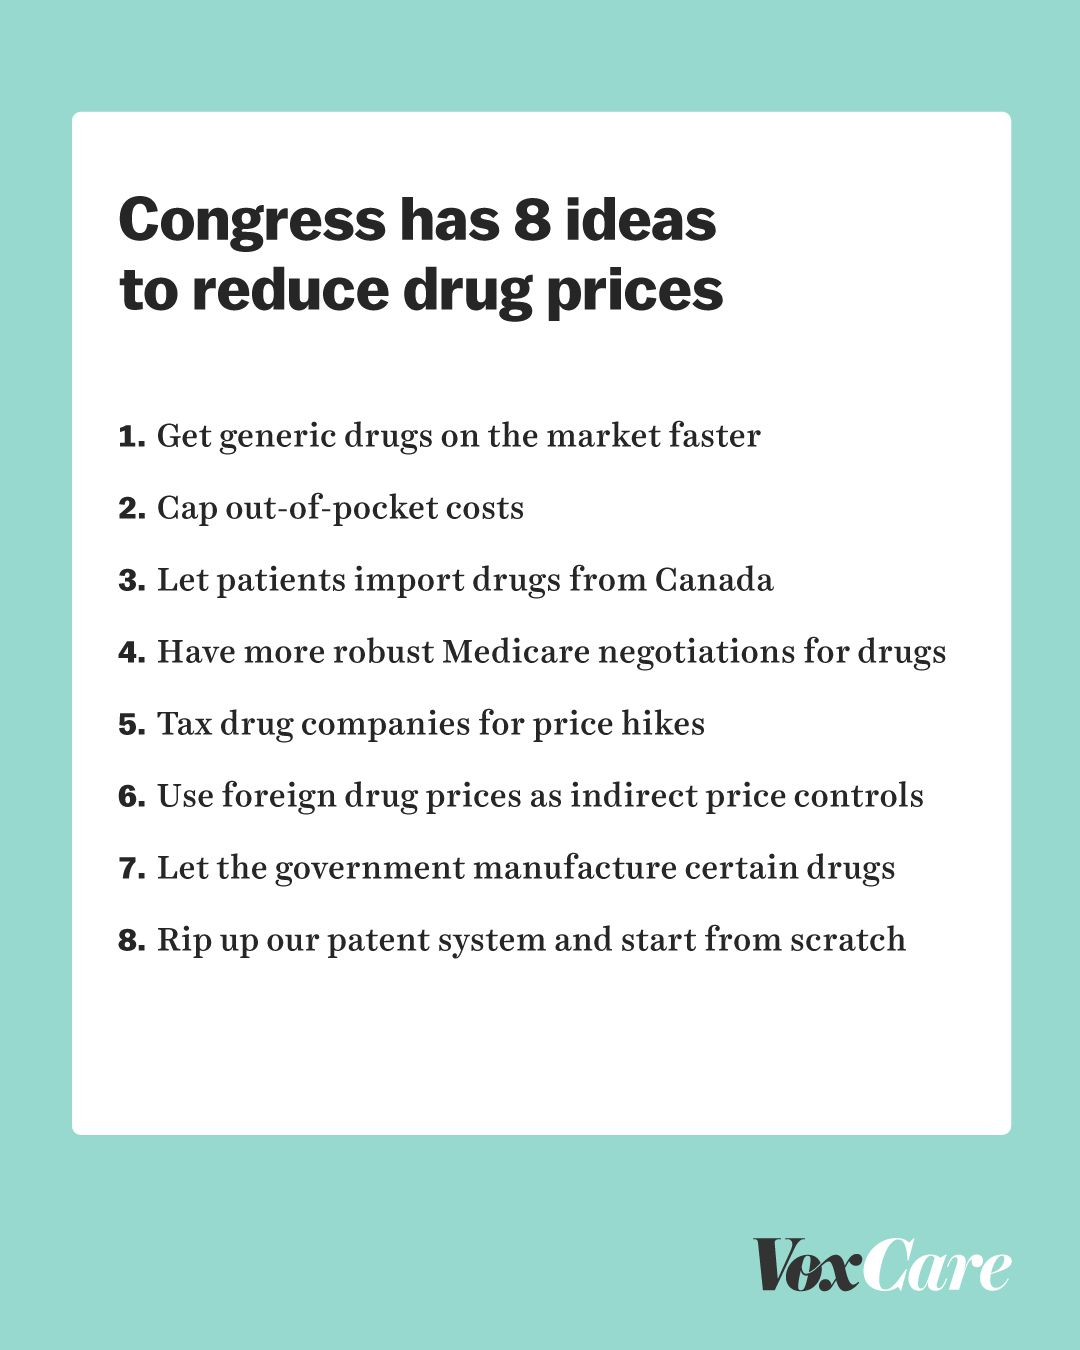 Pharmaceutical CEOs testify in Congress: 8 ideas for